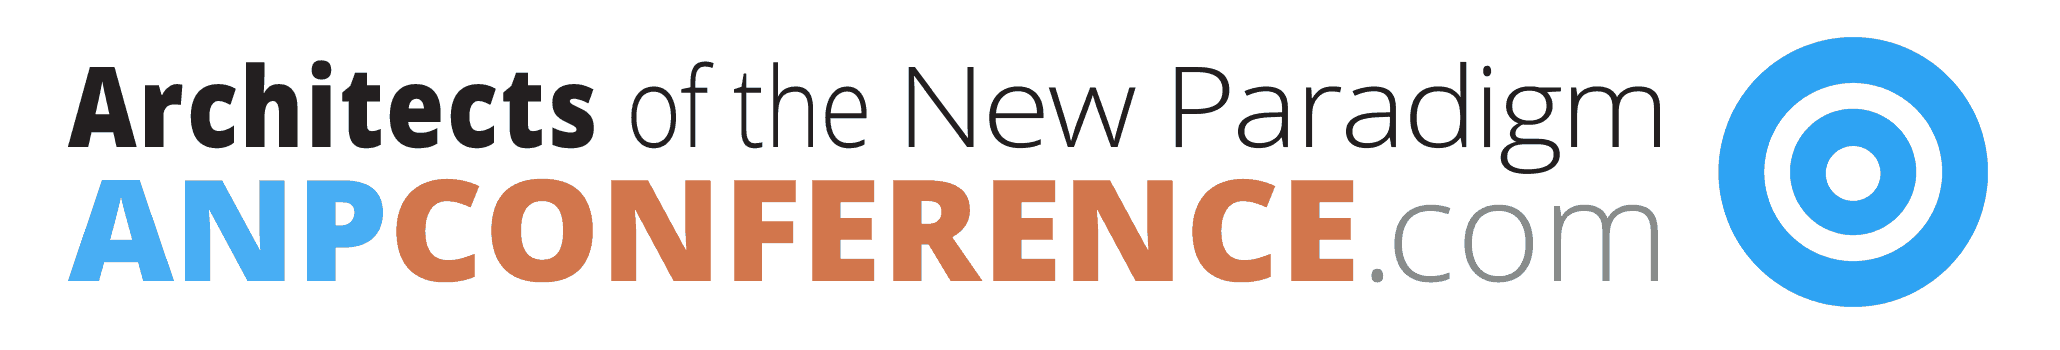 ANP -Architects of the New Paradigm Conference